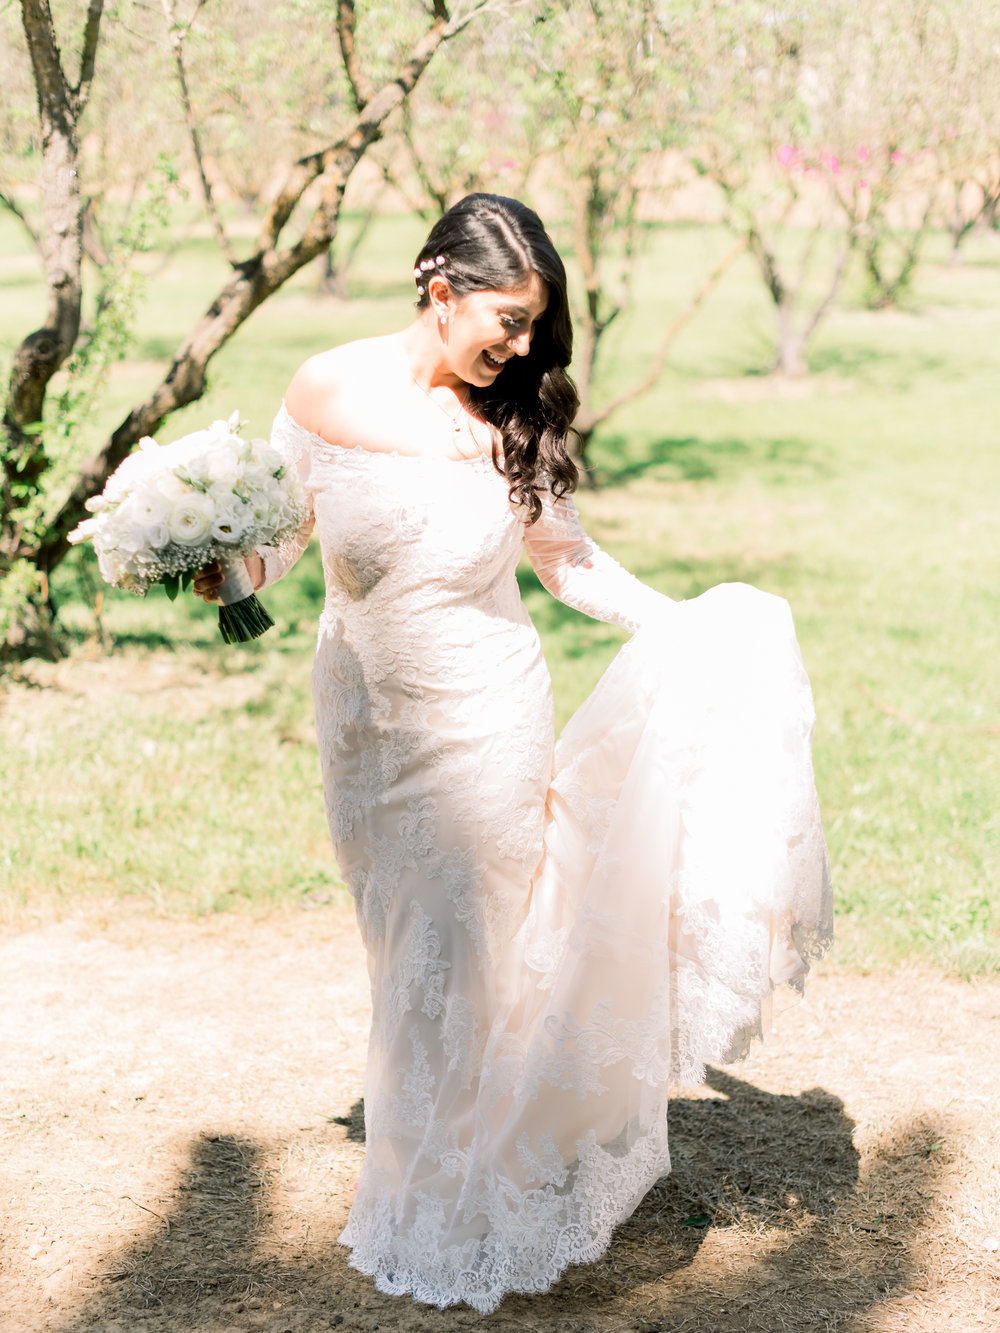 the-bride-being-playful-in-the-vineyard.jpg